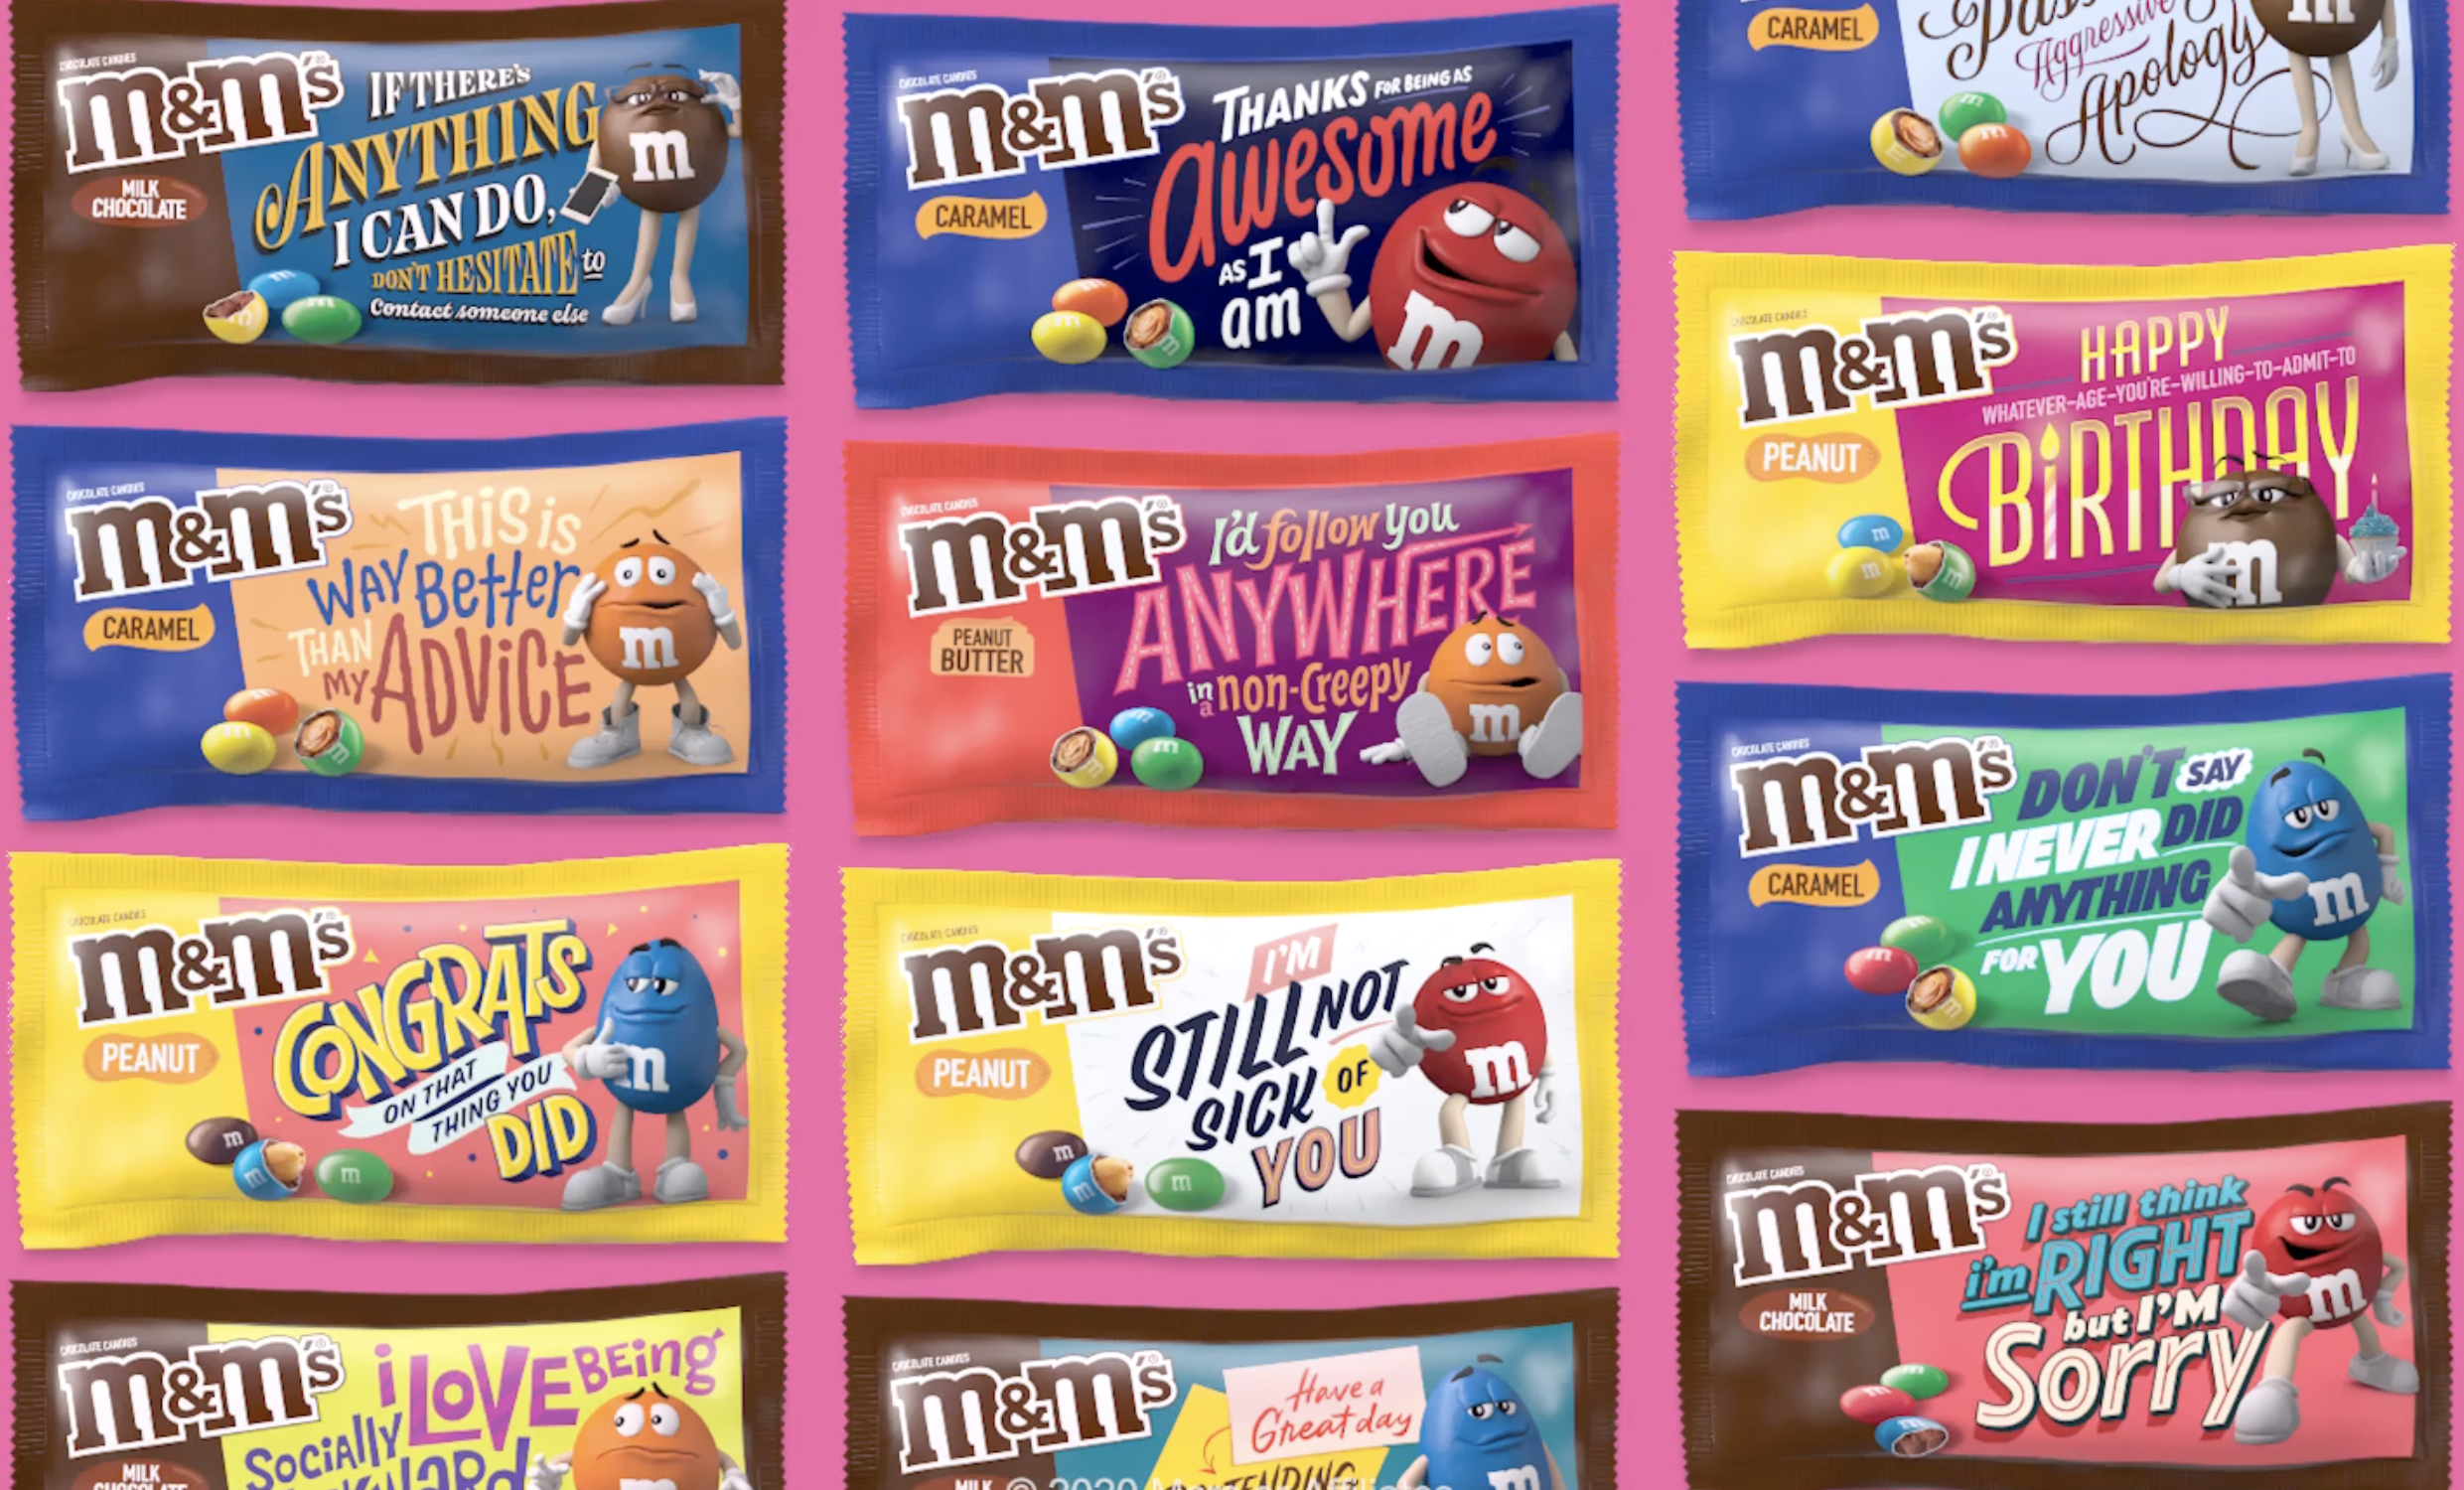 M&M's Makes an Appearance at Biggest Night in Hollywood